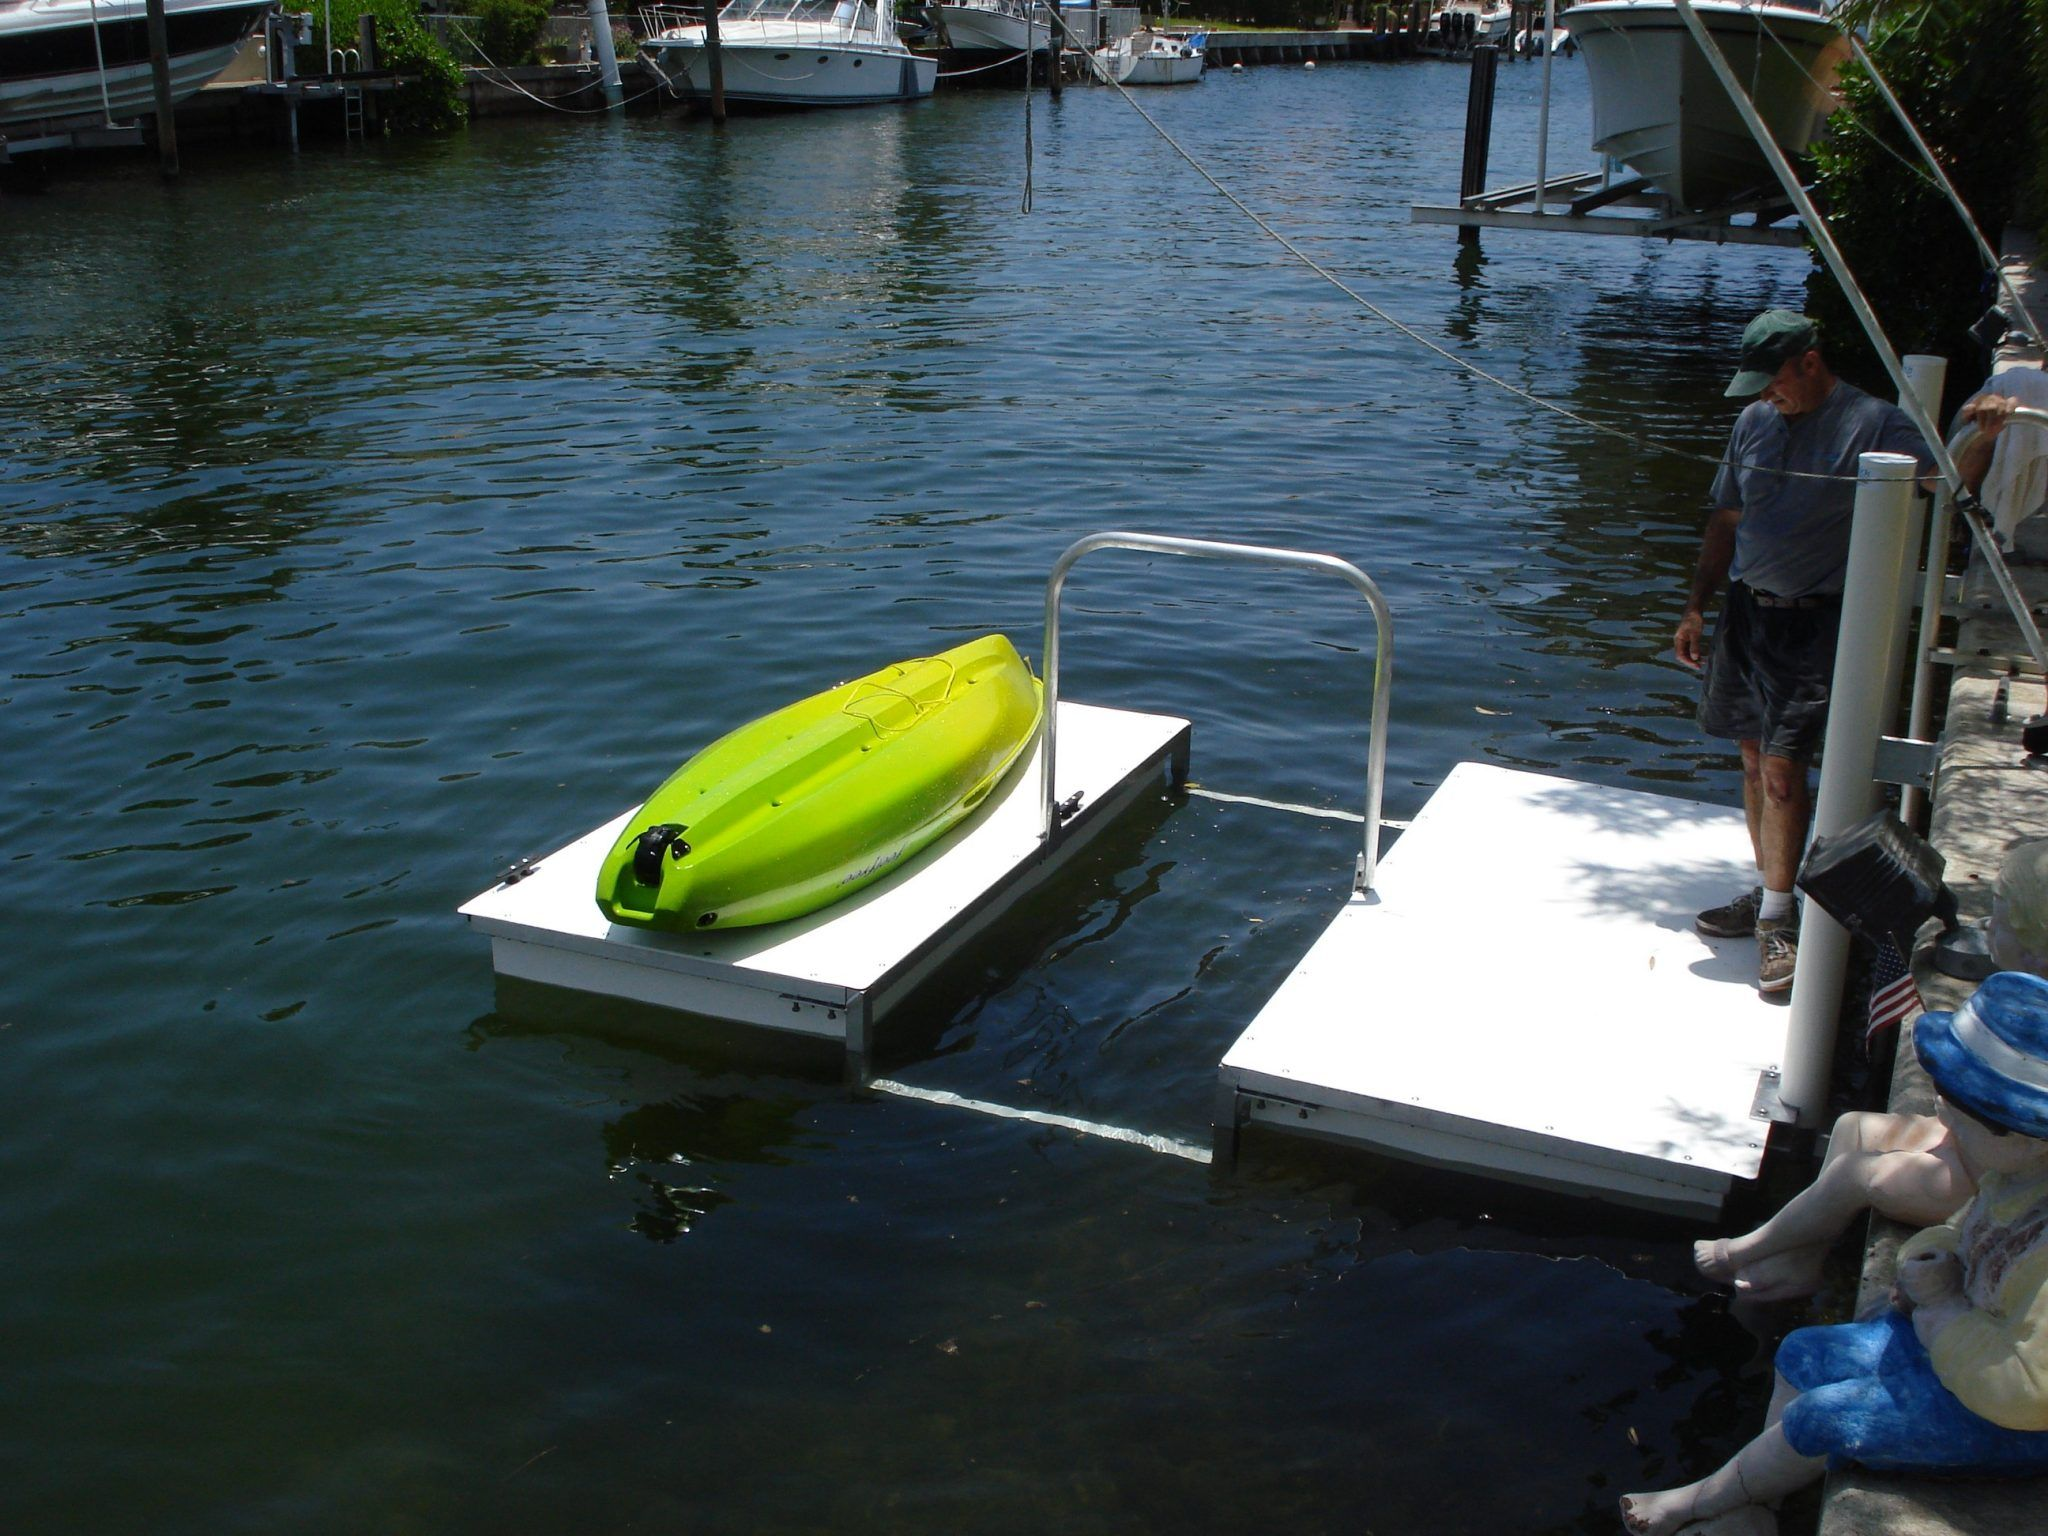 Dock Floats For Sale Accudock Floating Docks On Sale Dock Accents Inc Dock